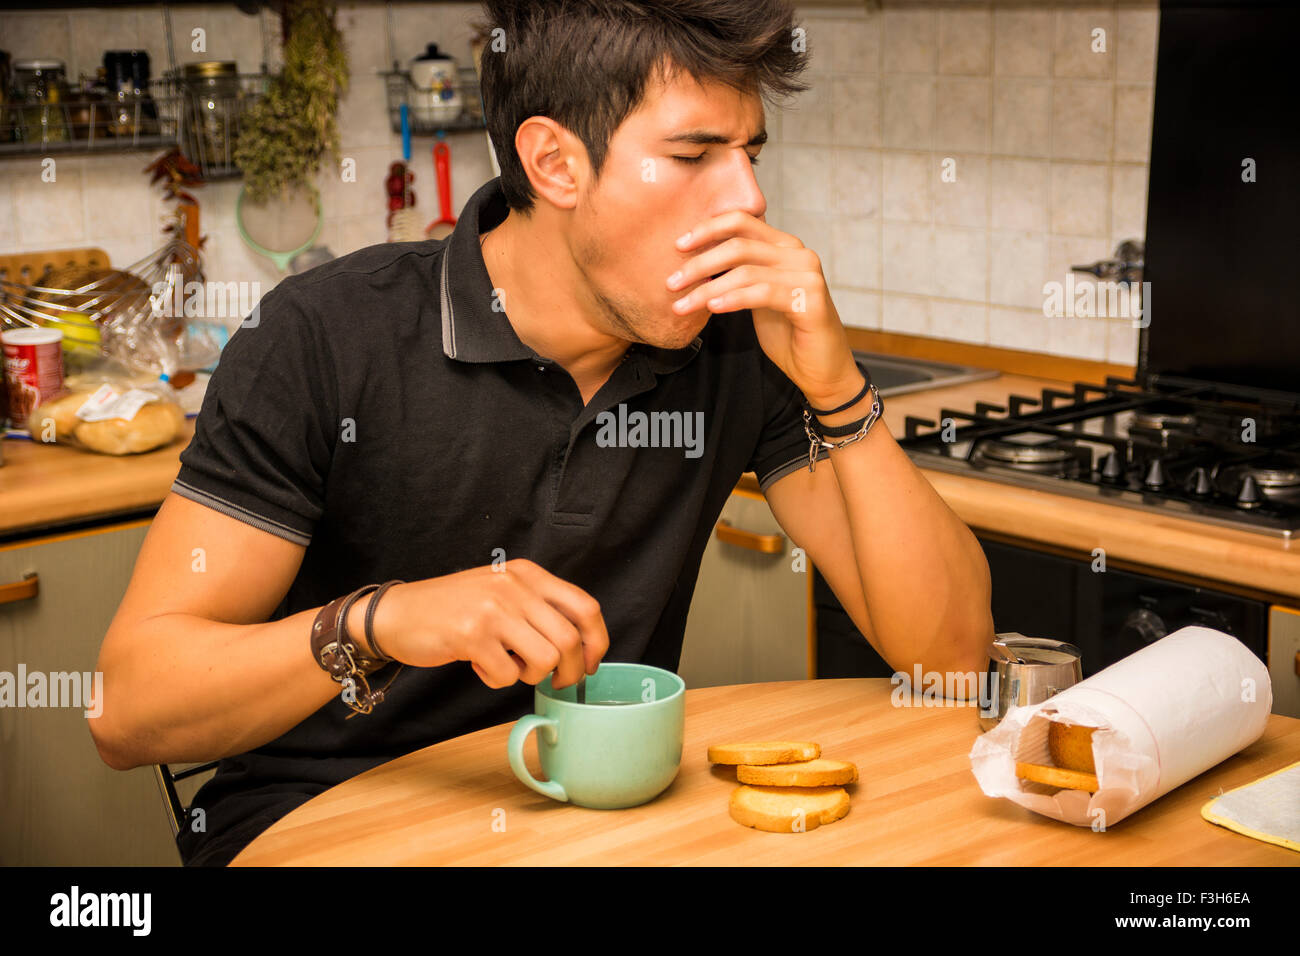 Tired Attractive Young Man Yawning with Eyes Closed and Hand on Mouth, Leaning with Elbow on Kitchen Table and Holding - Stock Image